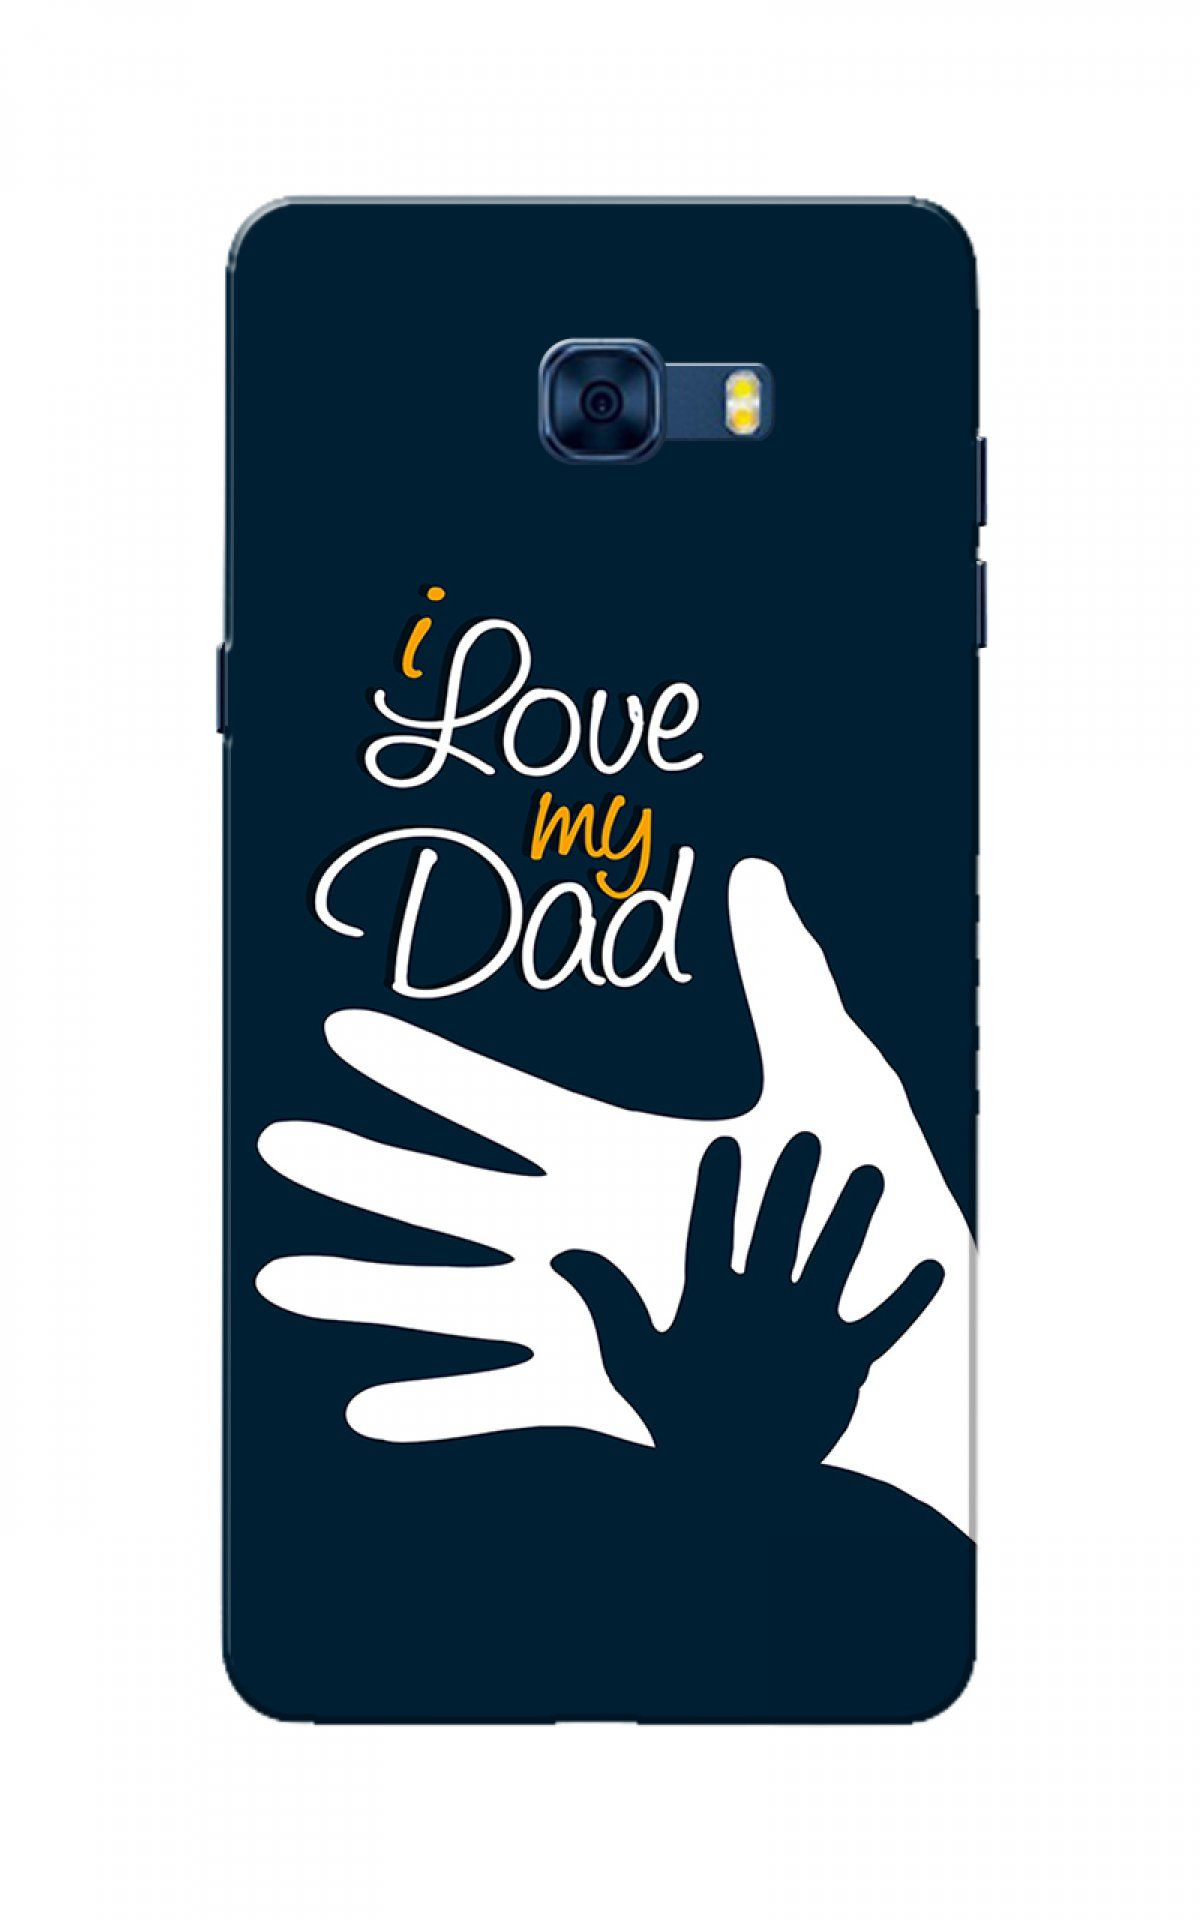 finest selection 9c82c b31db Caseria Galaxy C7 Pro Case, I Love My Dad Navy Blue Slim Fit Hard ...